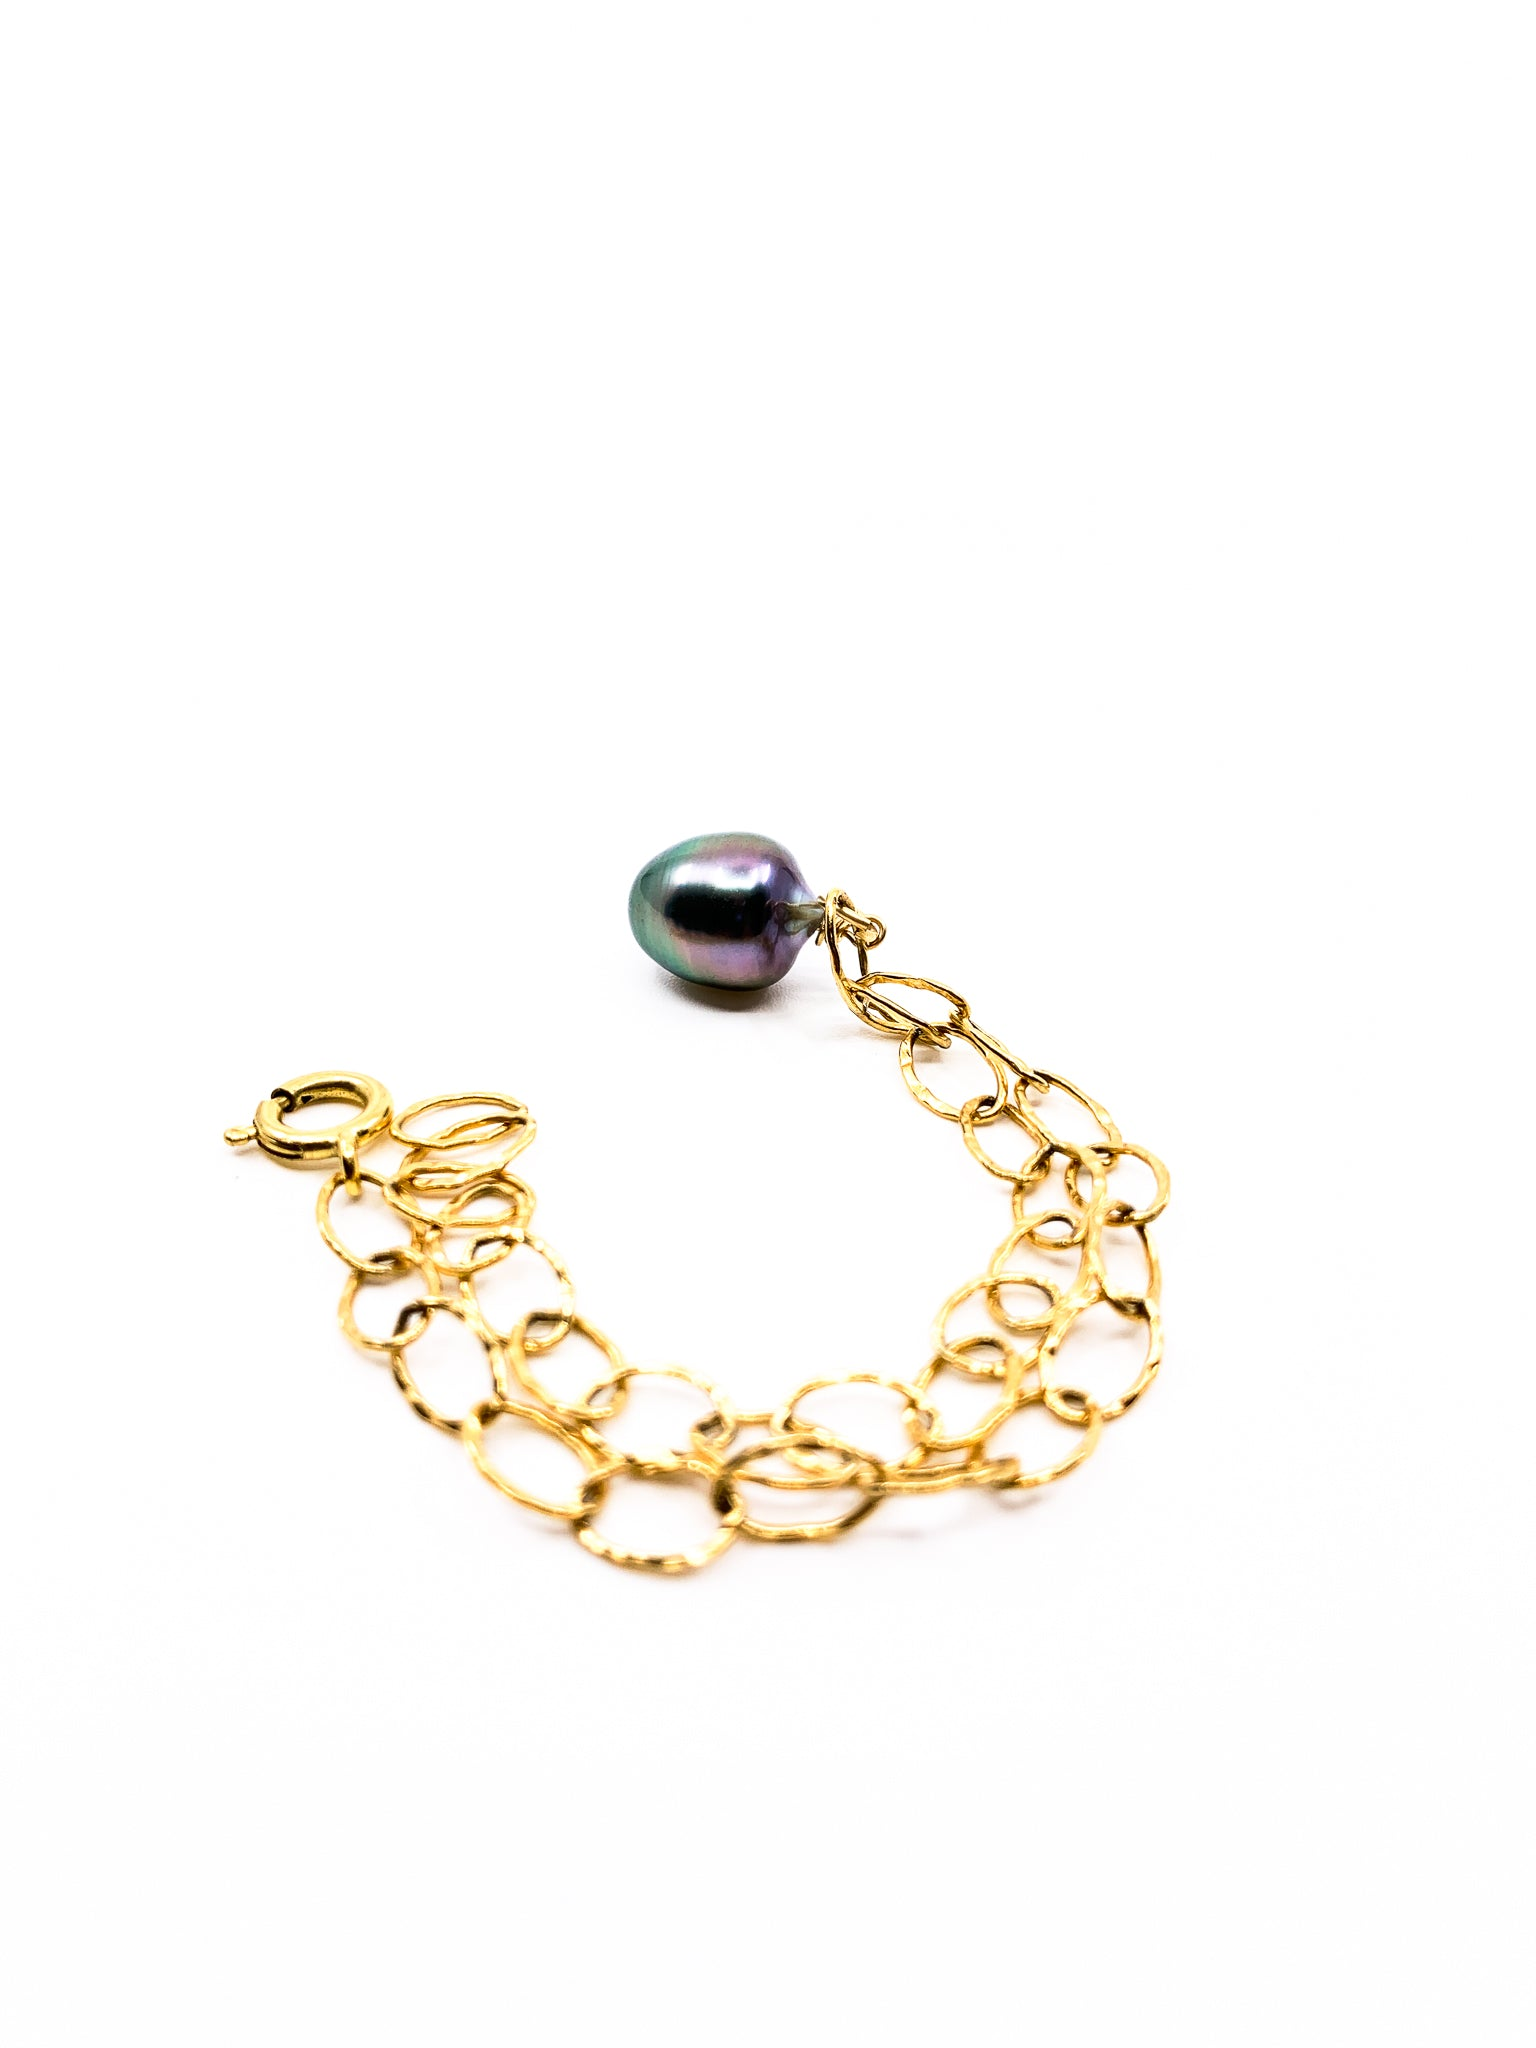 Tahitian Pearl gold chain charm bracelet by eve black jewelry made in Hawaii